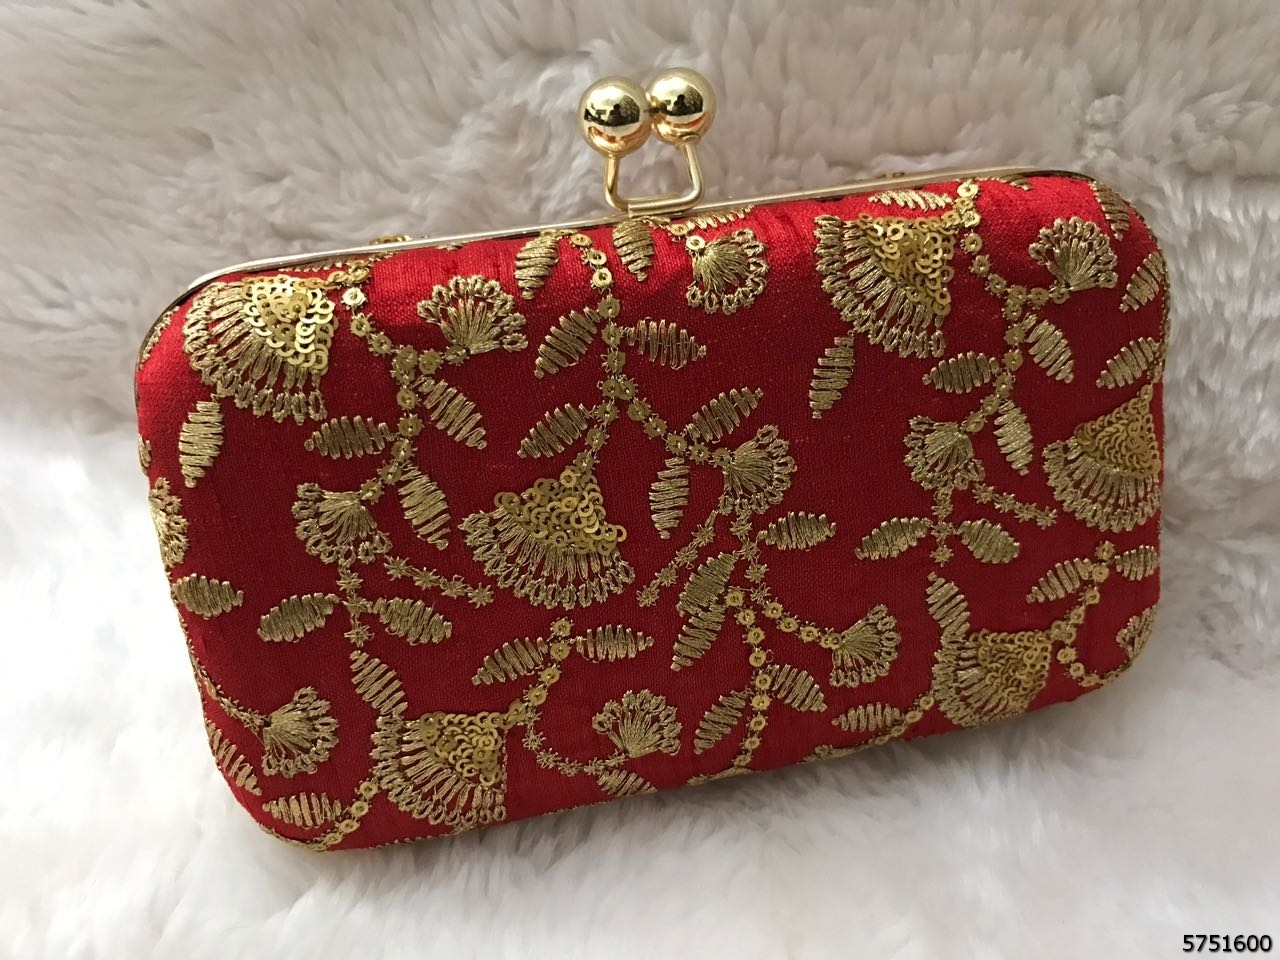 Fashionable And Classy Design Embroidery BoxClutch